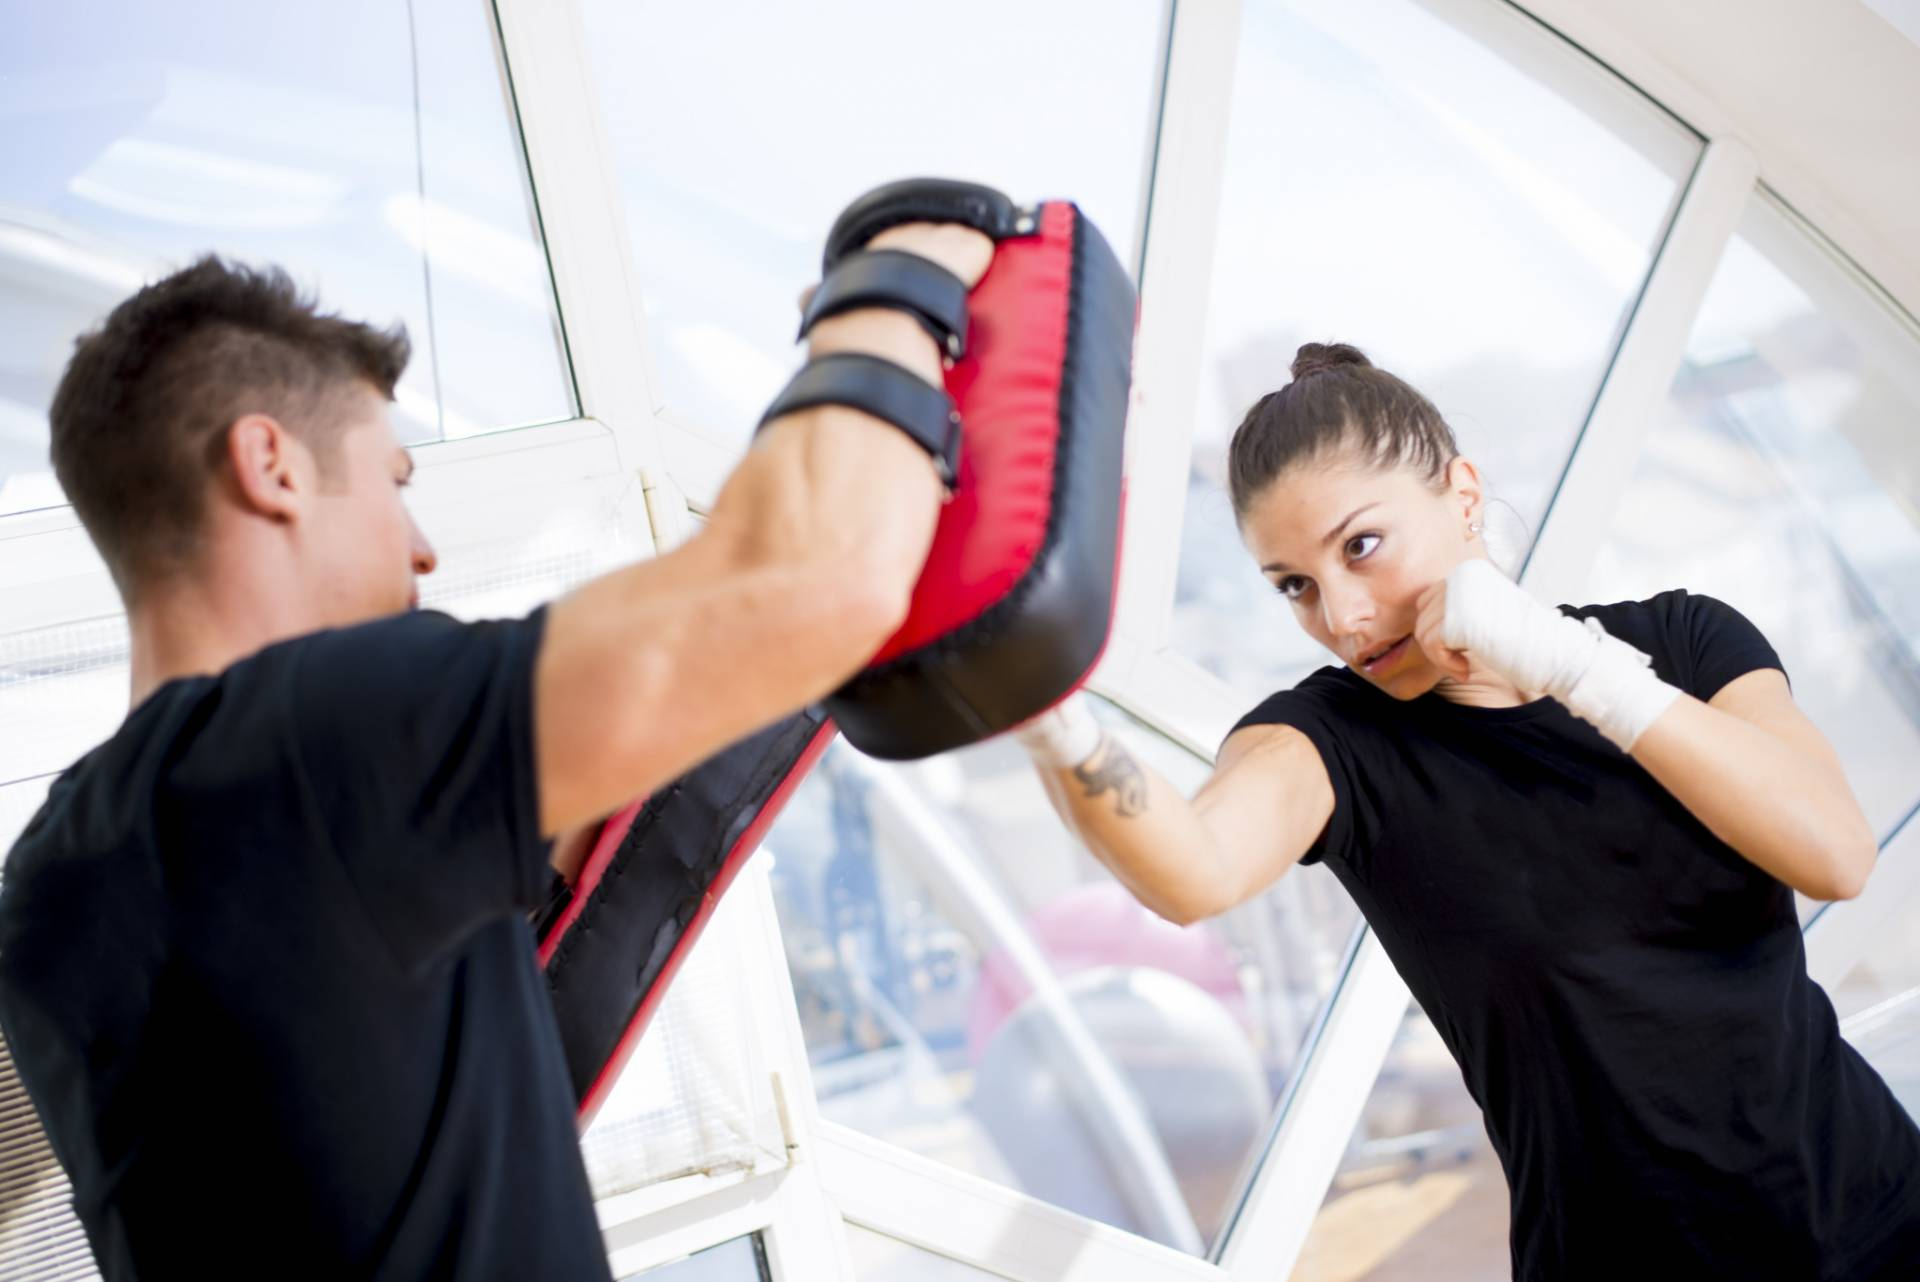 Women's Self Defense and Kickboxing